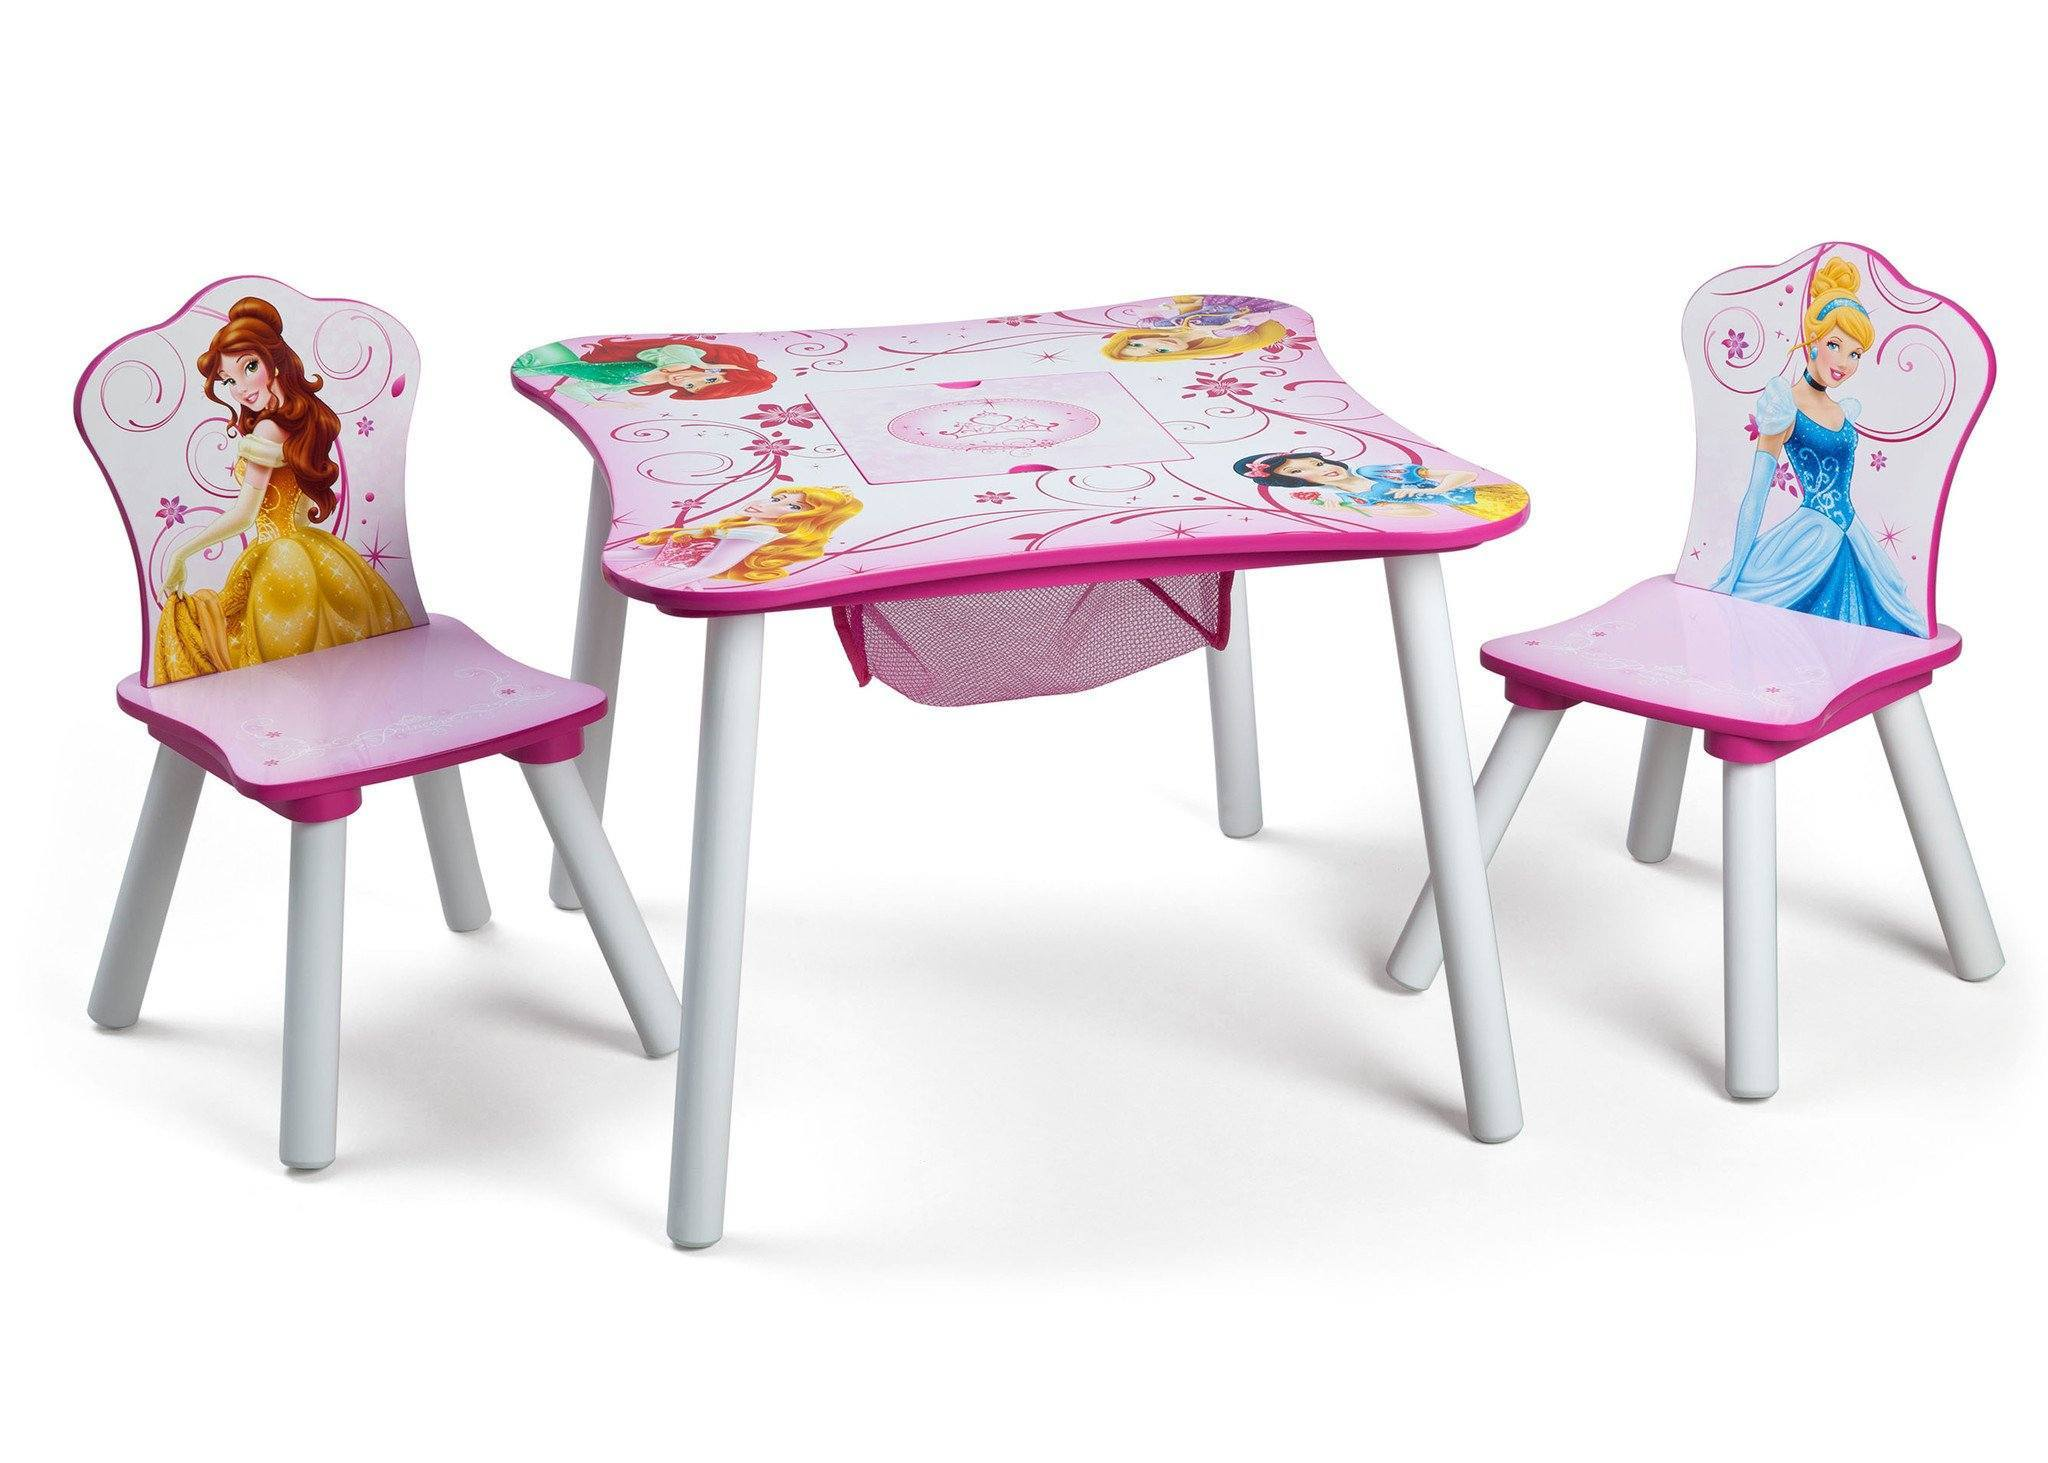 Disney Princess Table & Chair Set with Storage | Delta Children ...